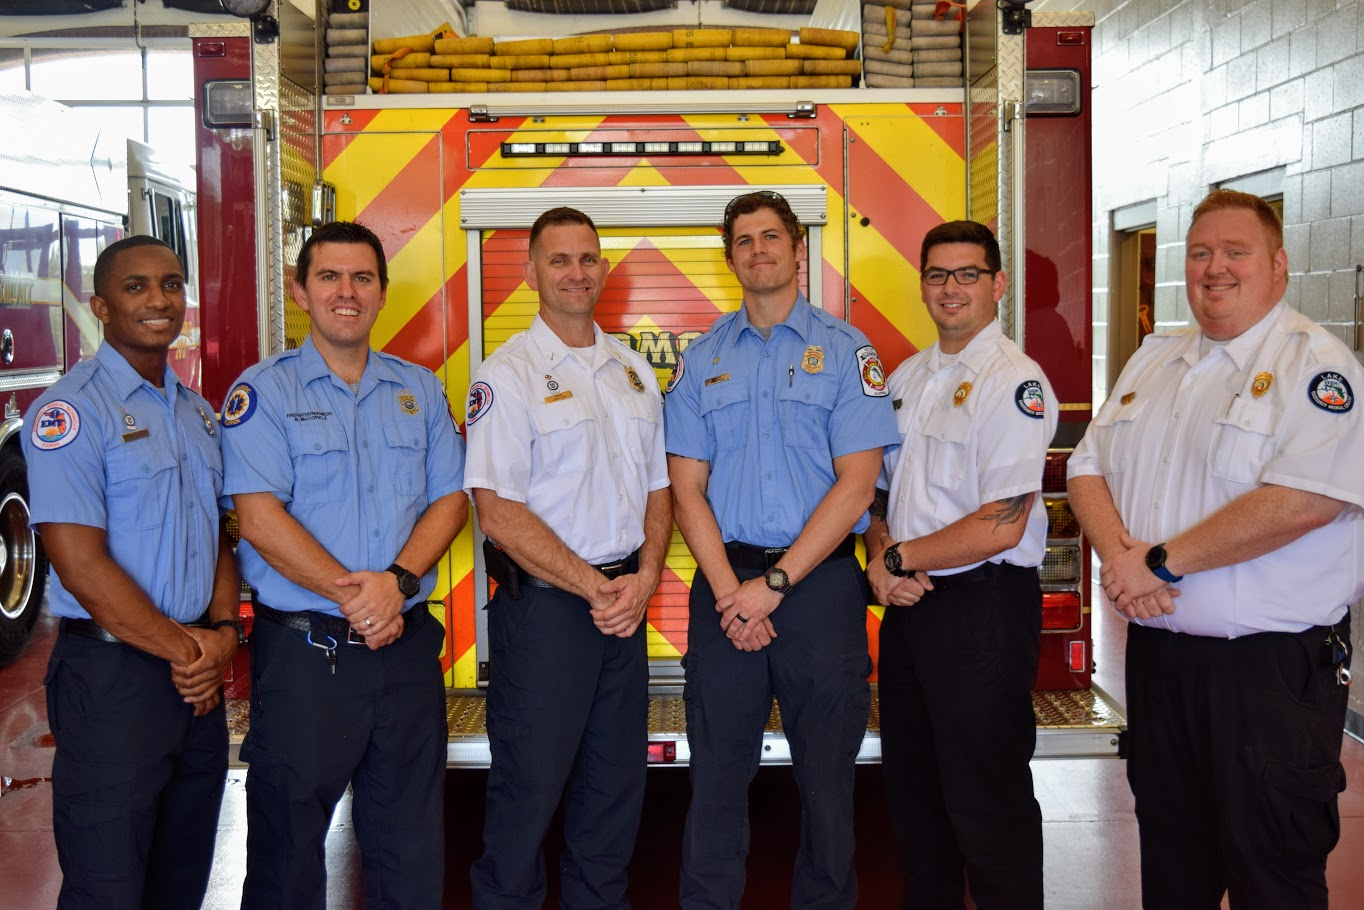 Firefighters stand smiling in front of a firetruck